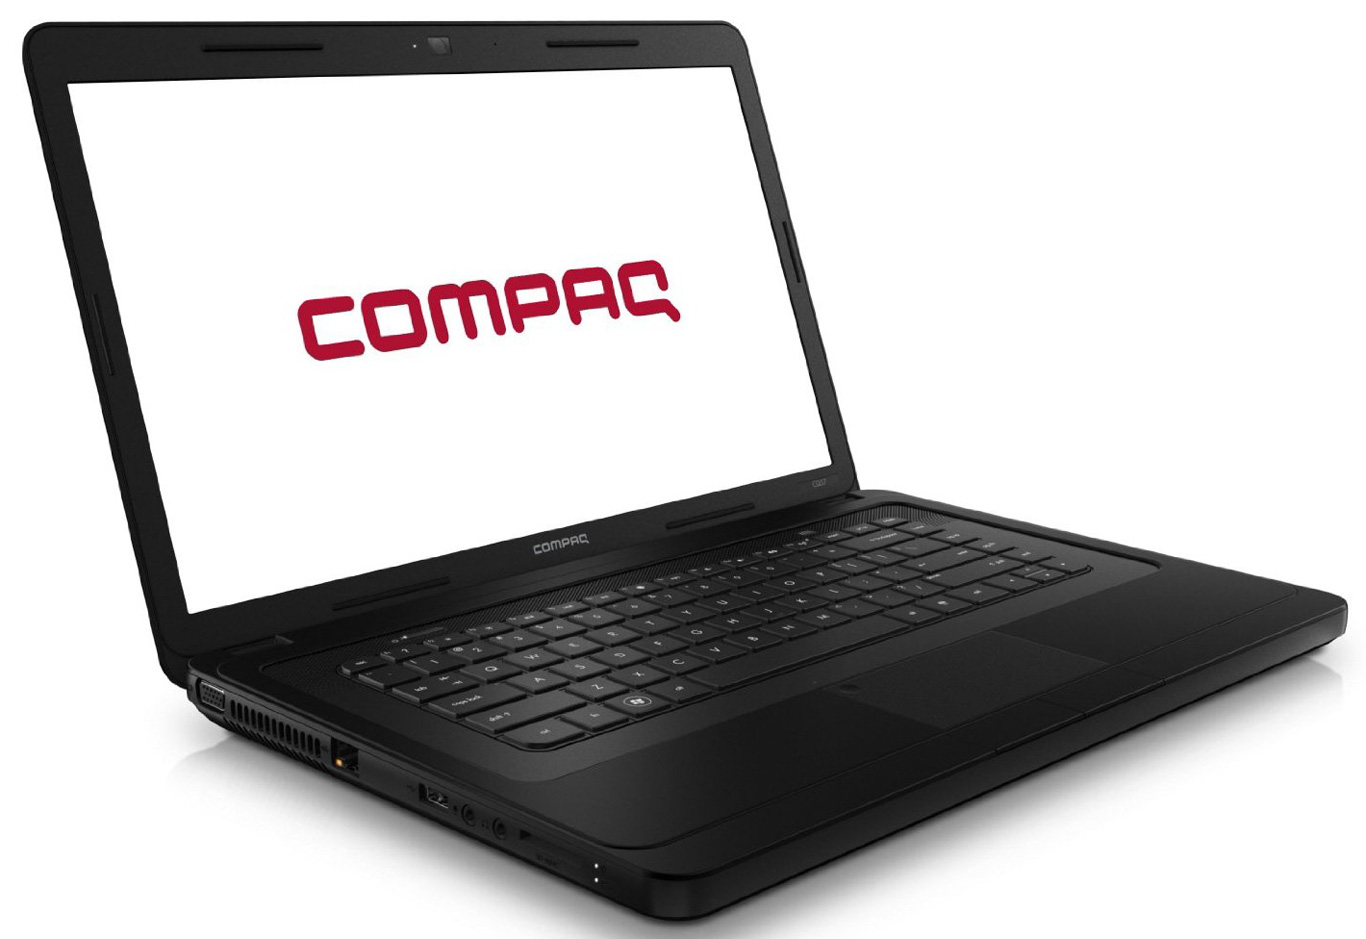 "HP Compaq Presario cq58-1.60GHZ - 15.6"" - E-300 - Windows 7 Premium 64-bit - 4 GB RAM - 320 GB"